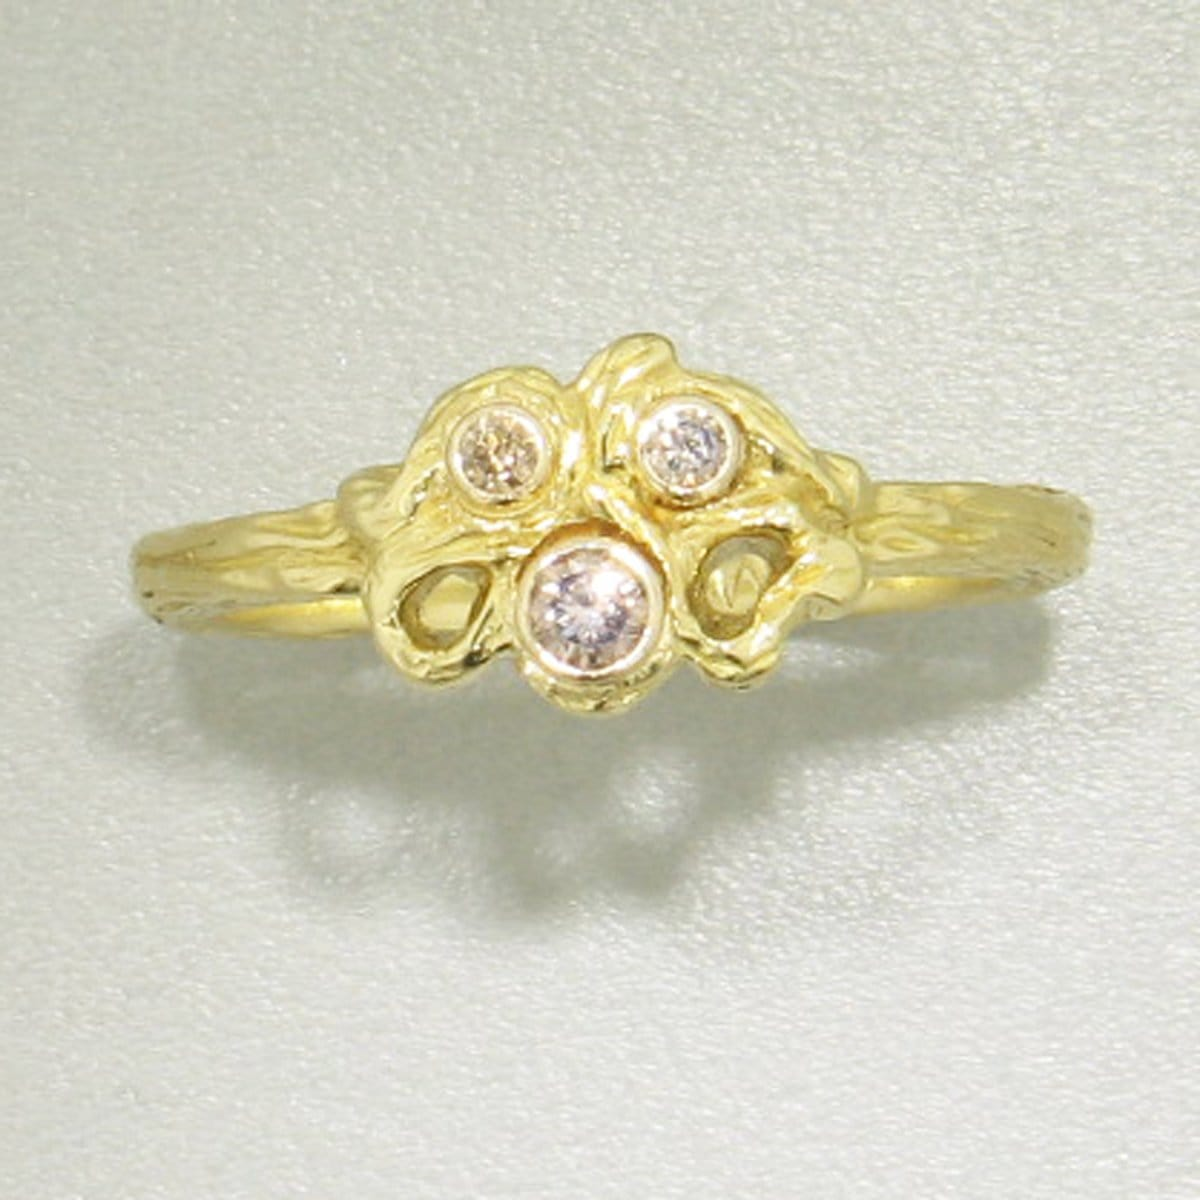 Shadow Gold & Diamond Ring - 40R8-5-3G-YG-Sarah Graham-Renee Taylor Gallery